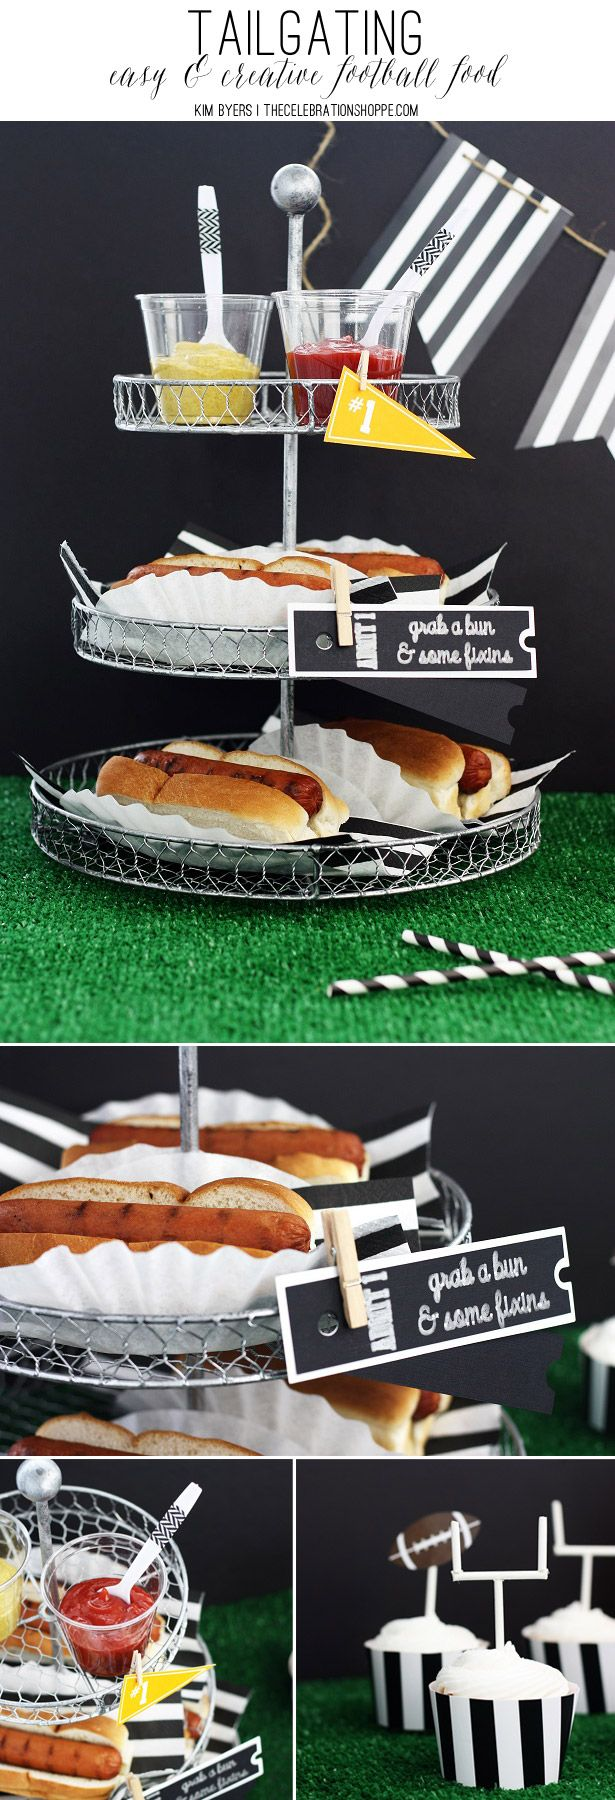 Tailgating – Easy & Creative Football Food | Kim Byers, TheCelebrationShoppe.com #footballparty